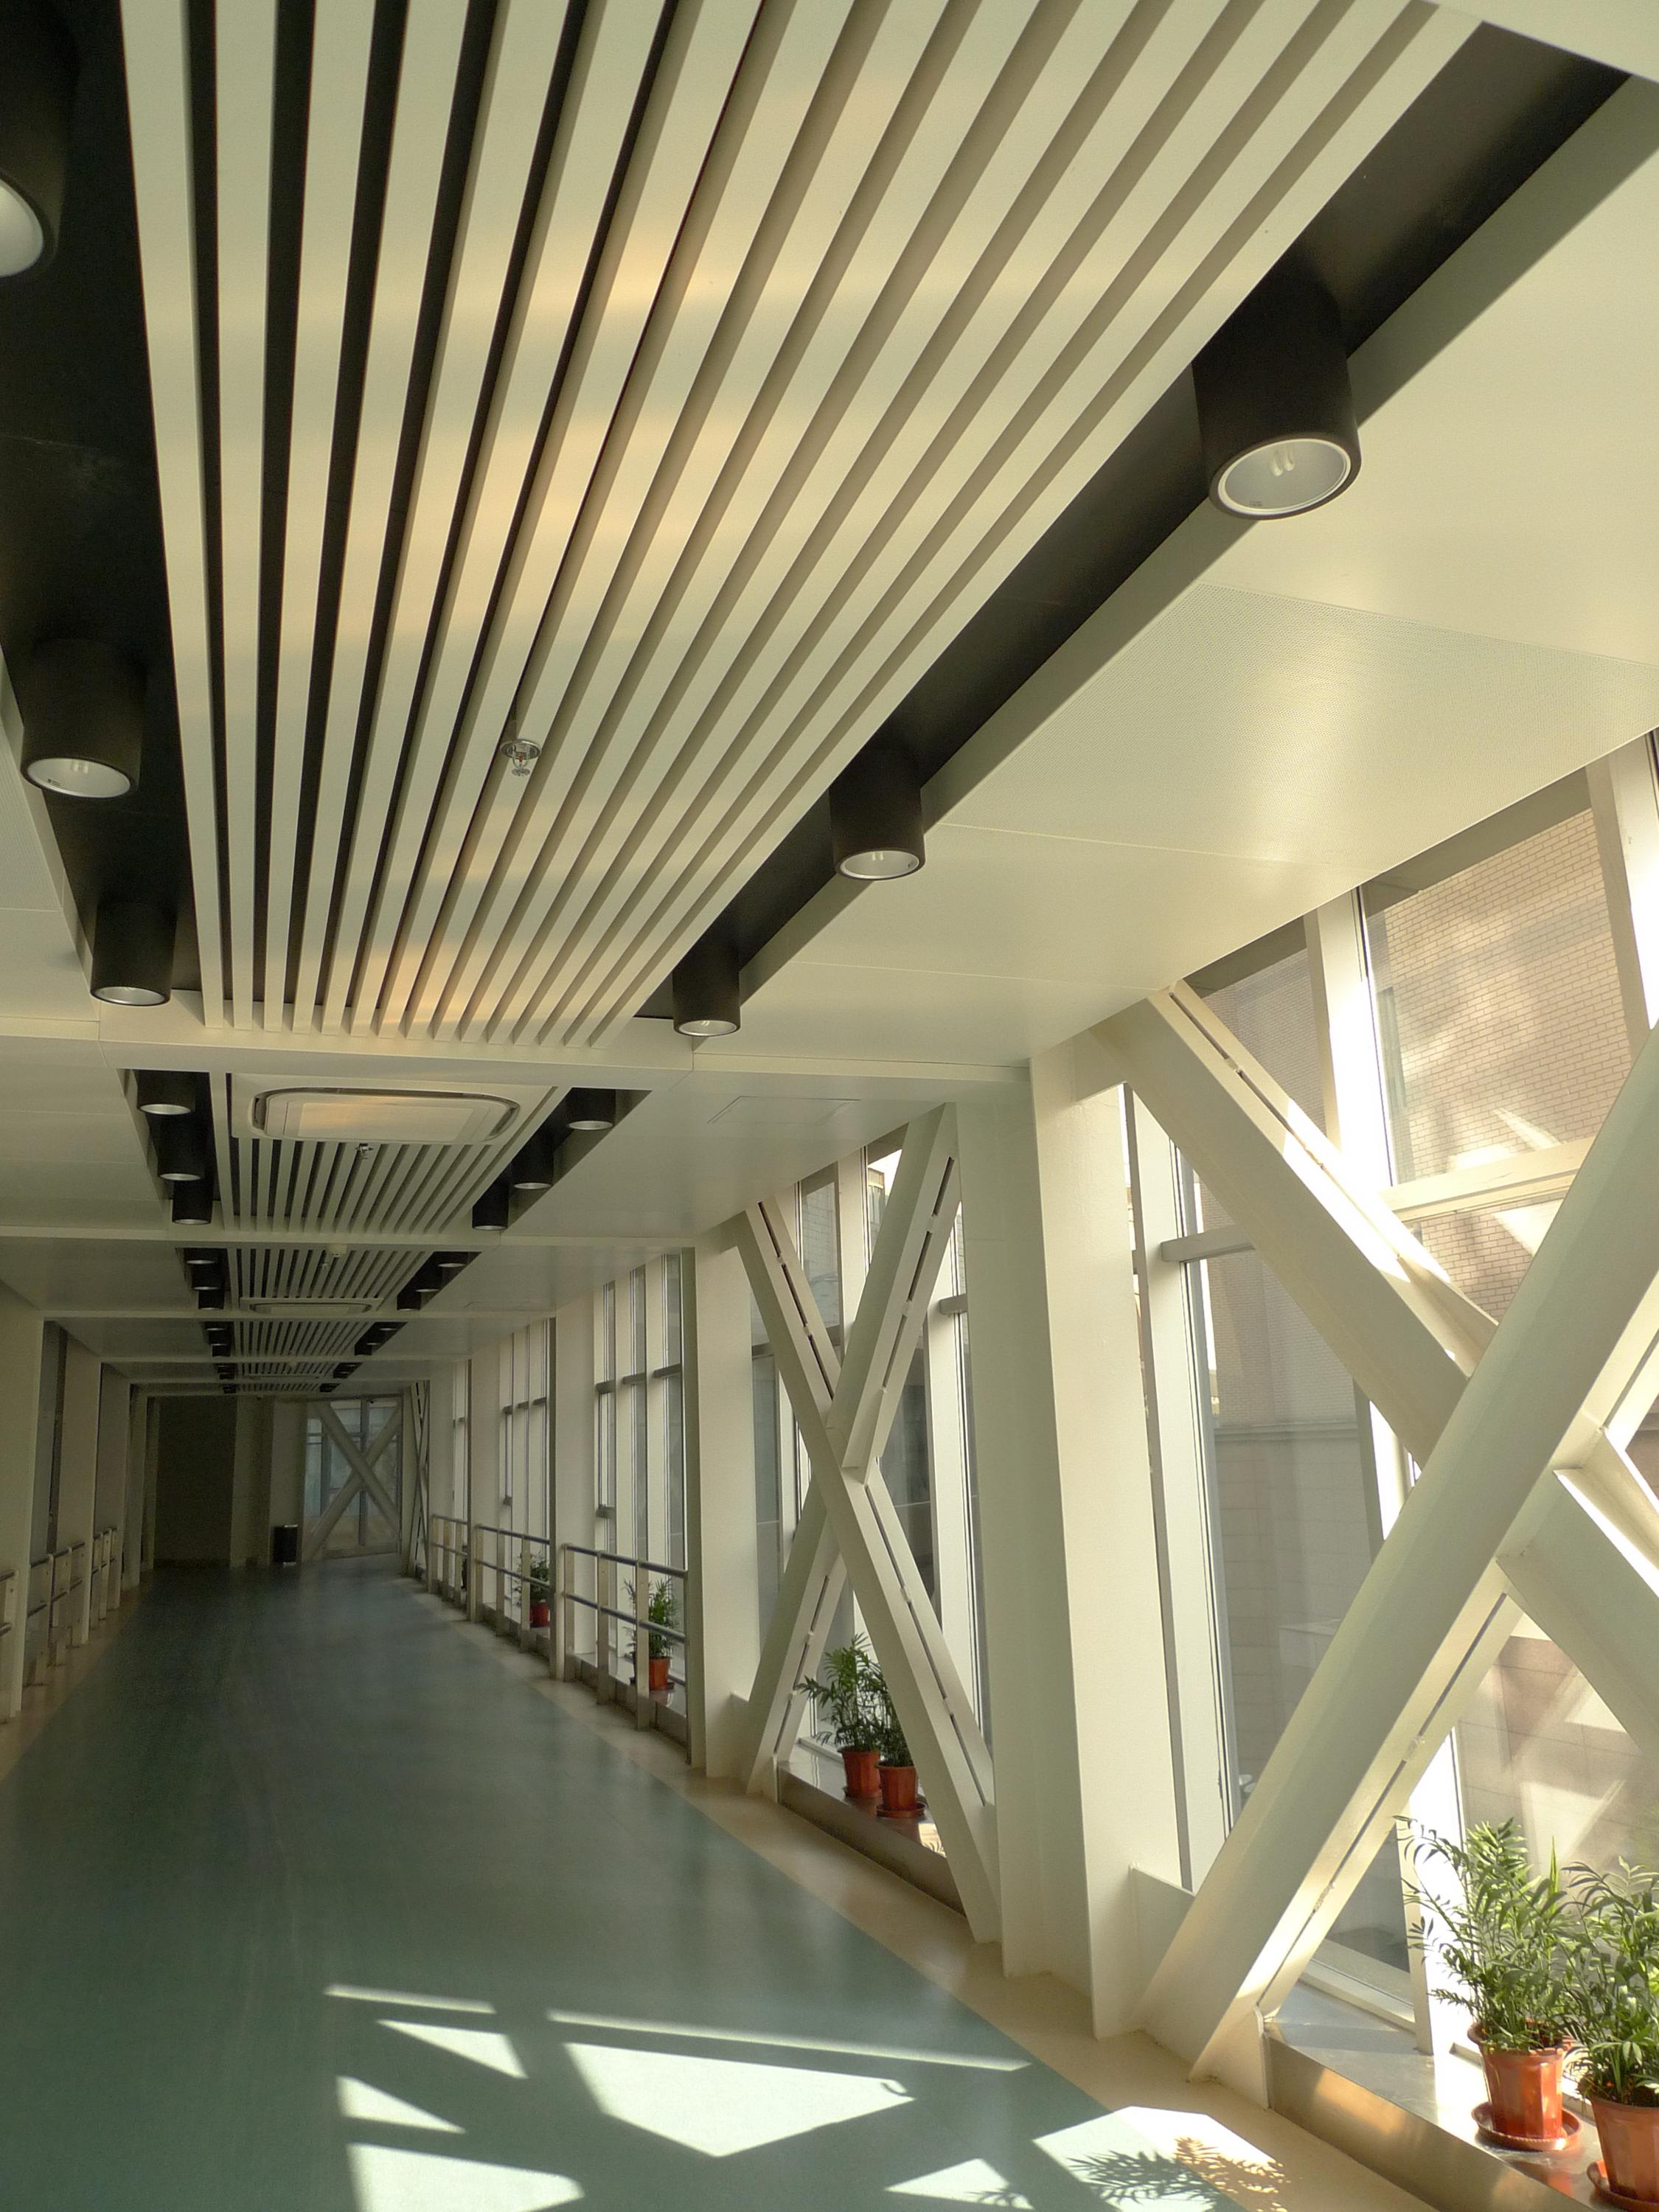 Building Material U- Shaped Aluminum Baffle Ceiling Suspended Linear Rectangular Tube